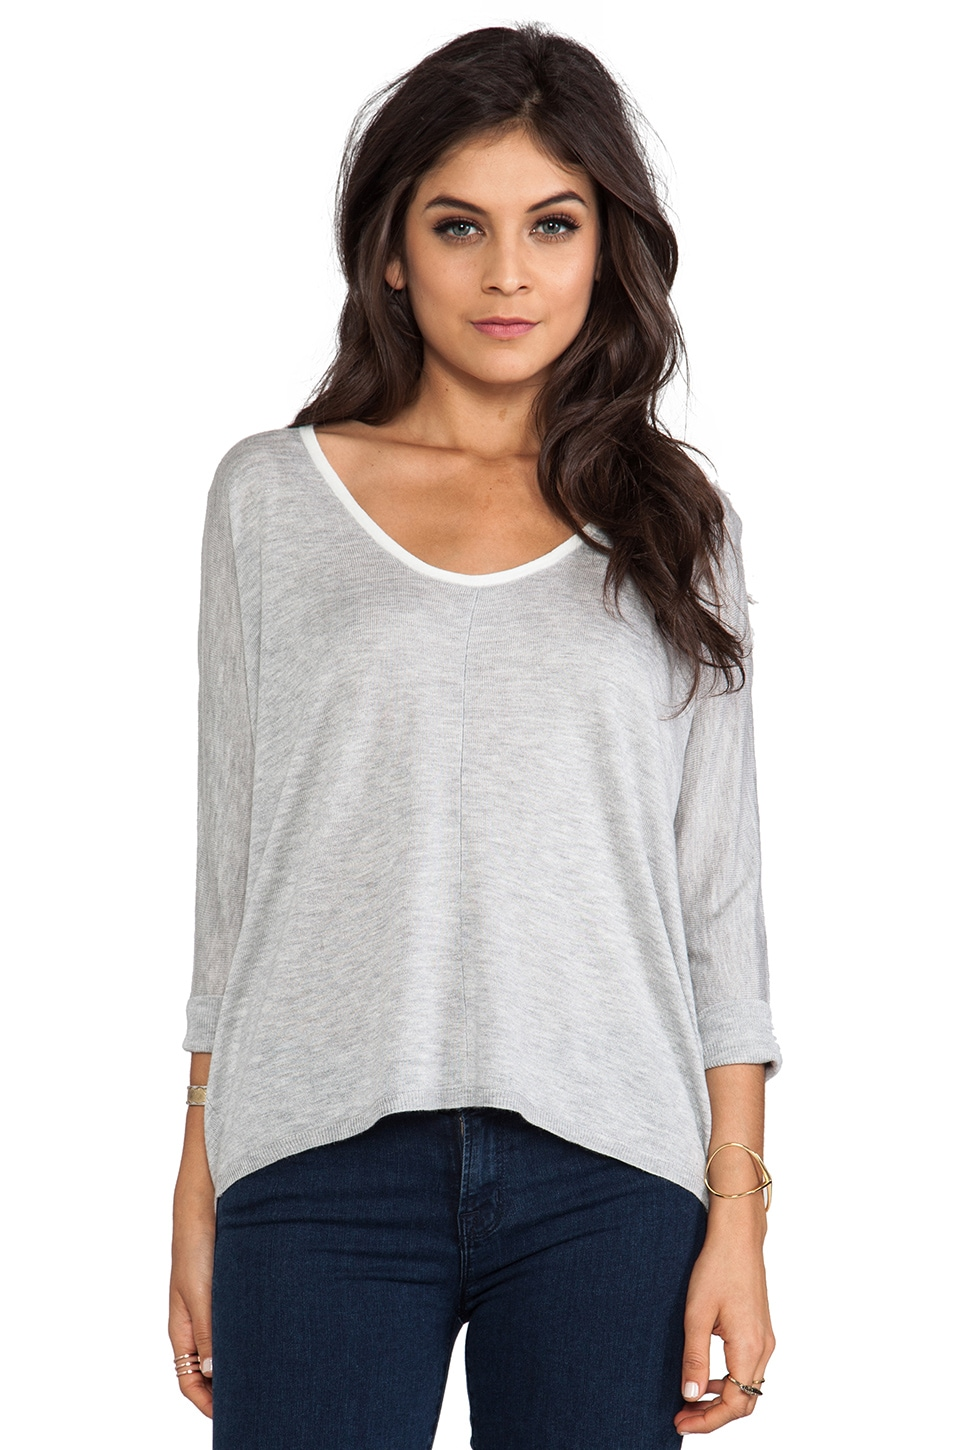 Splendid Cashmere Blend Sweater in Heather Grey